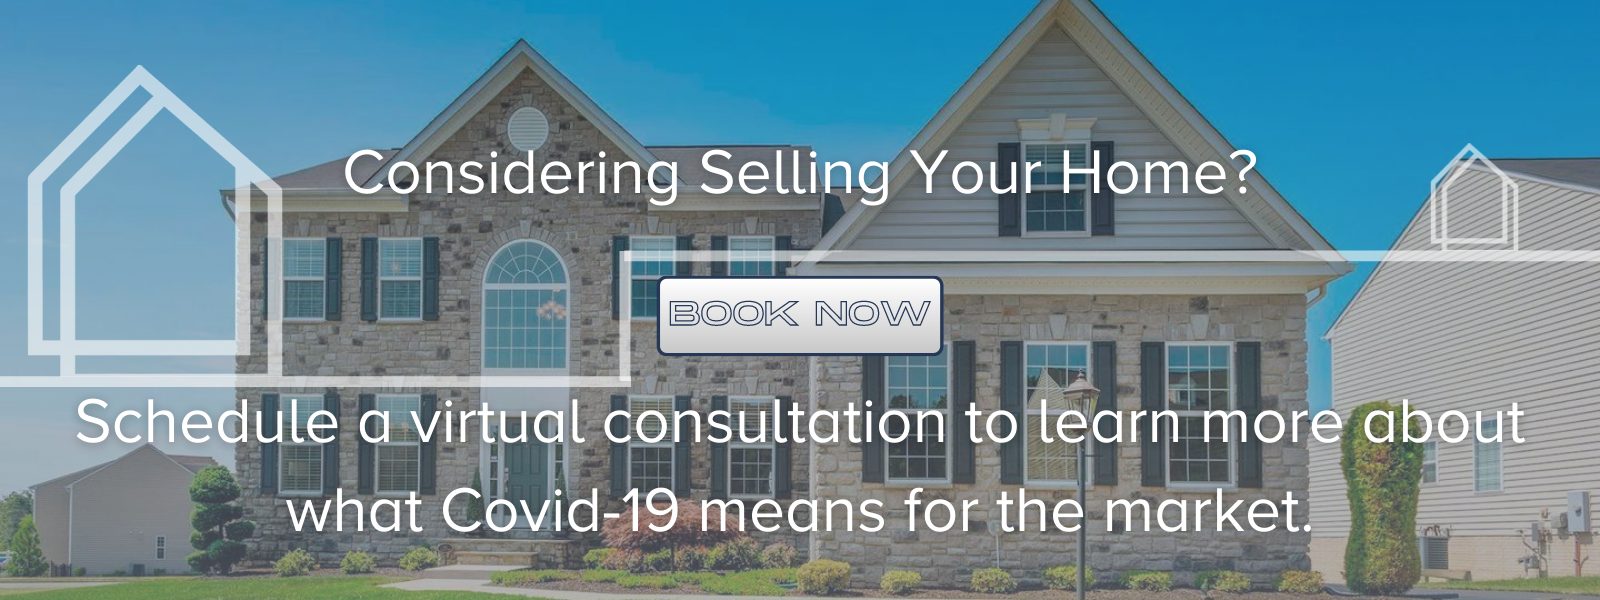 Considering Selling Your Home? Learn more about what Covid-19 means for the market.